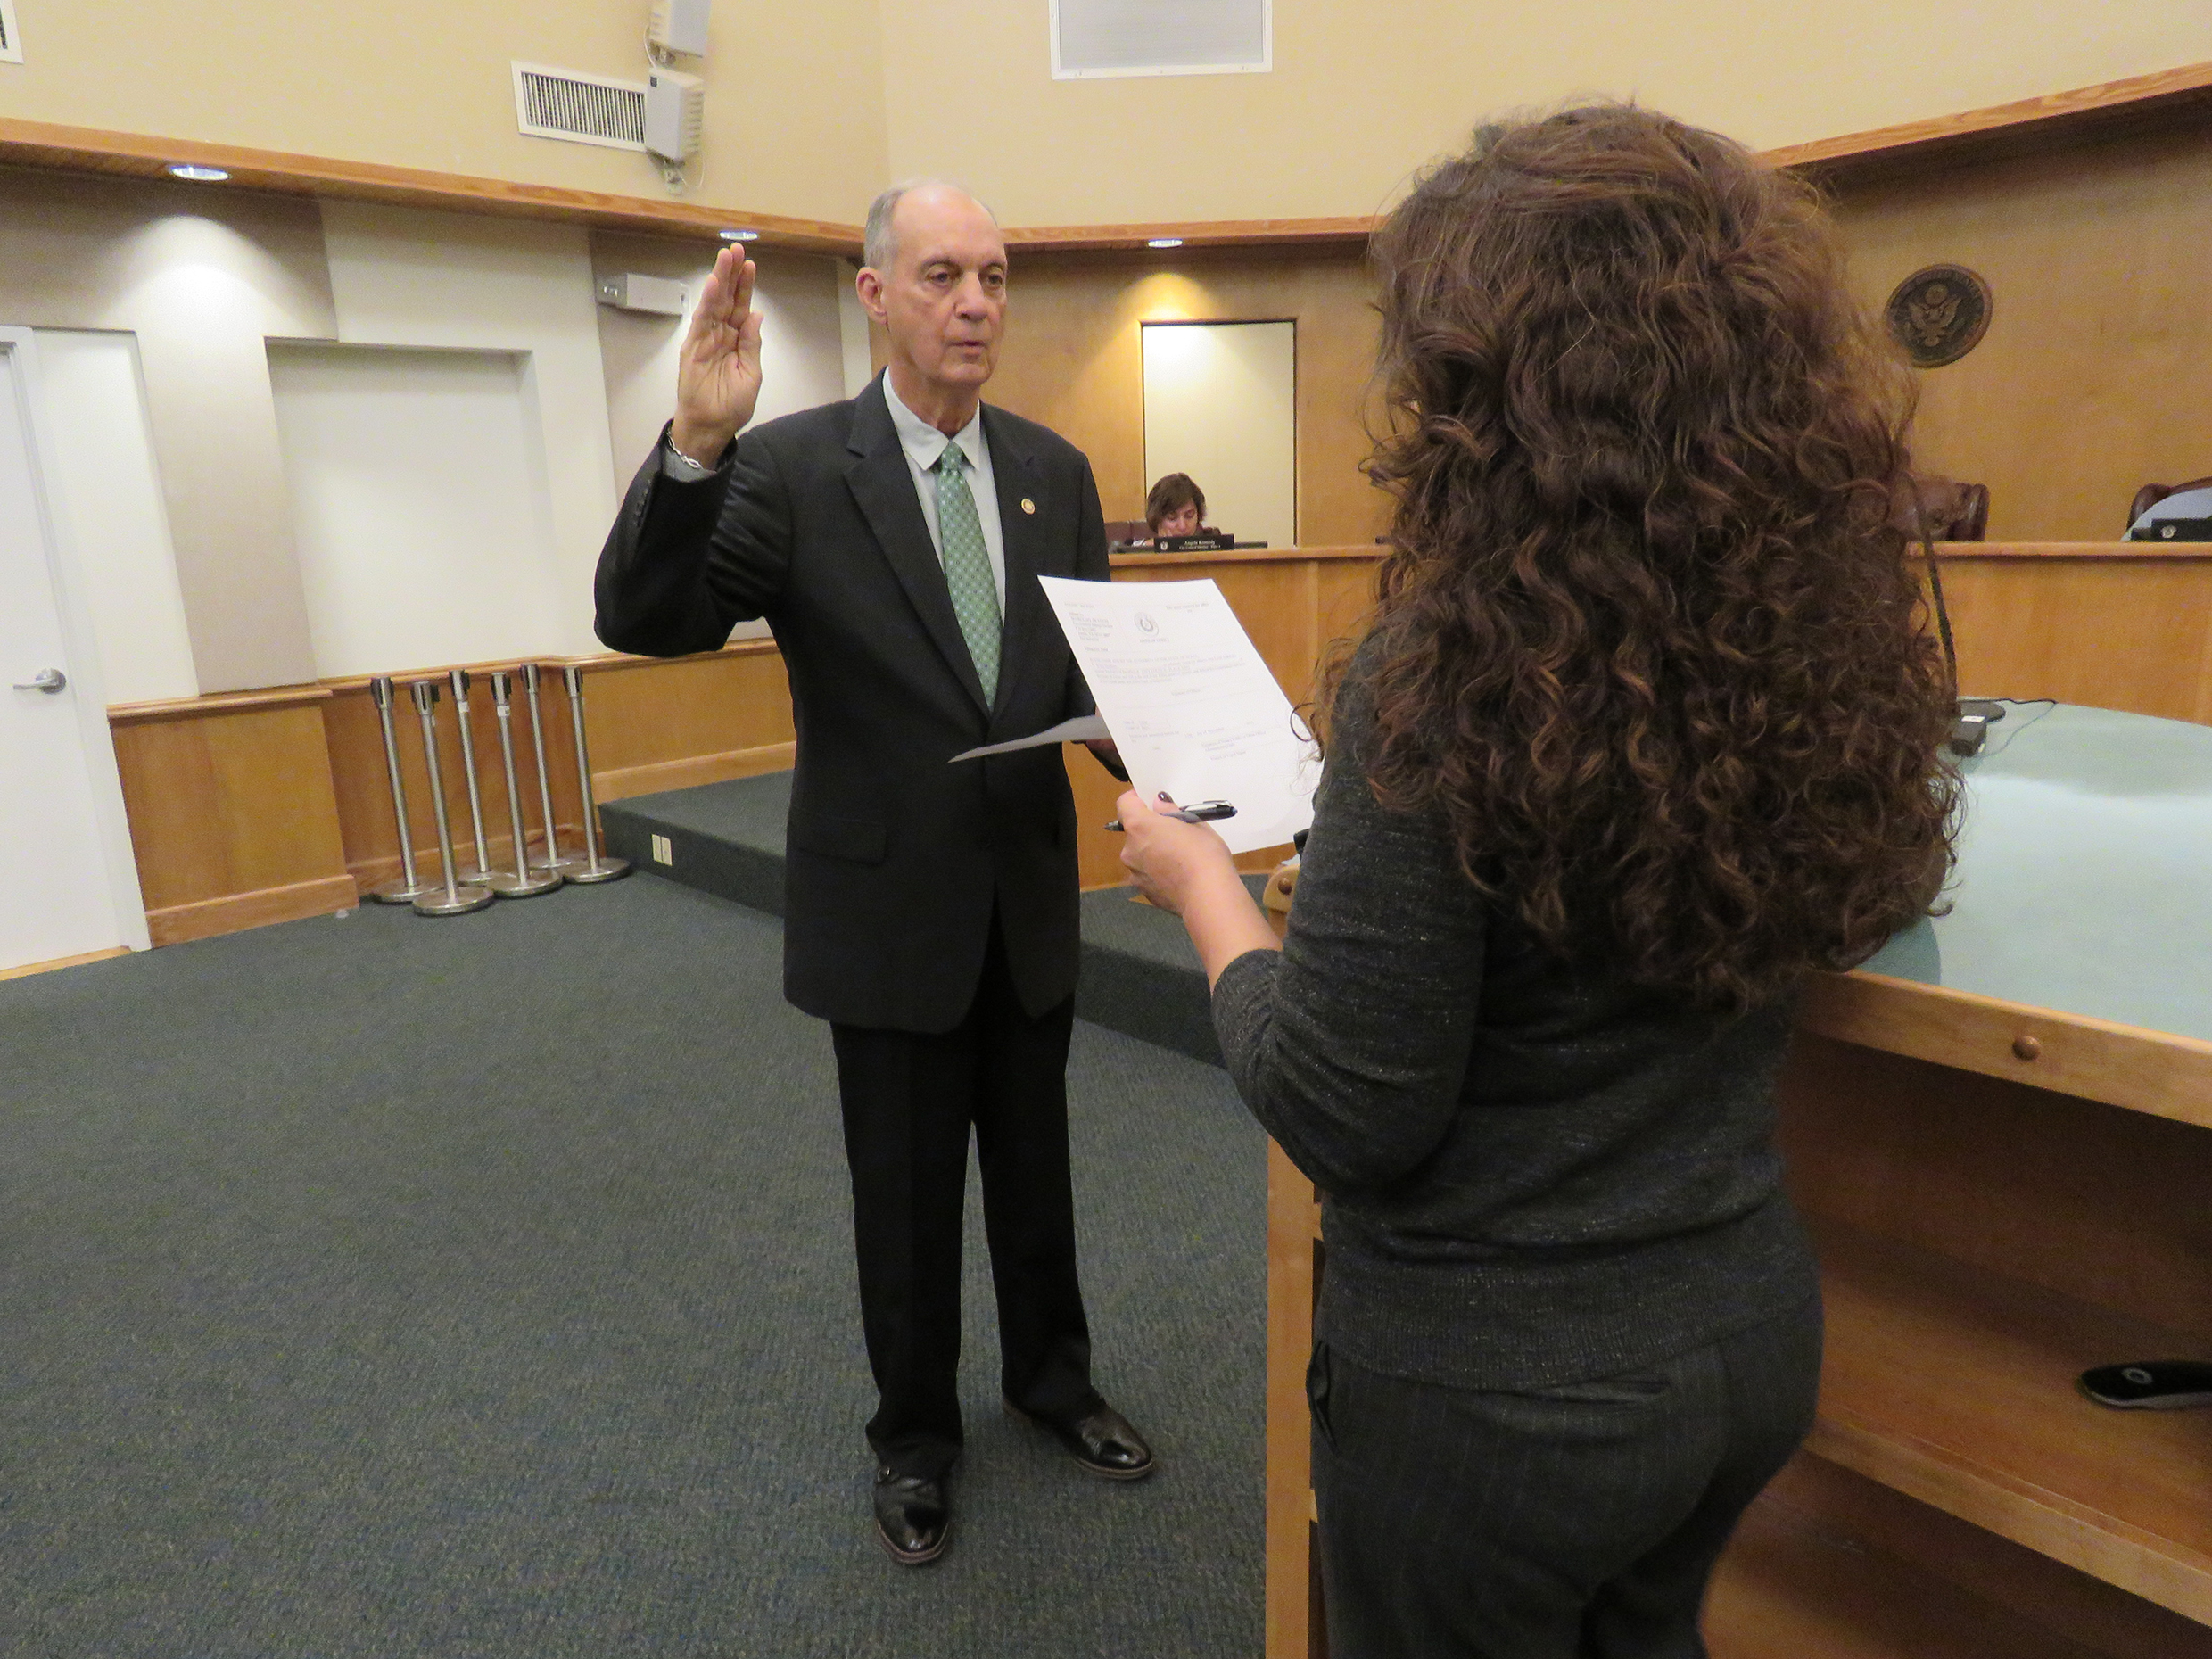 Picture of Wiley Hopkins being sworn-in by City Secretary